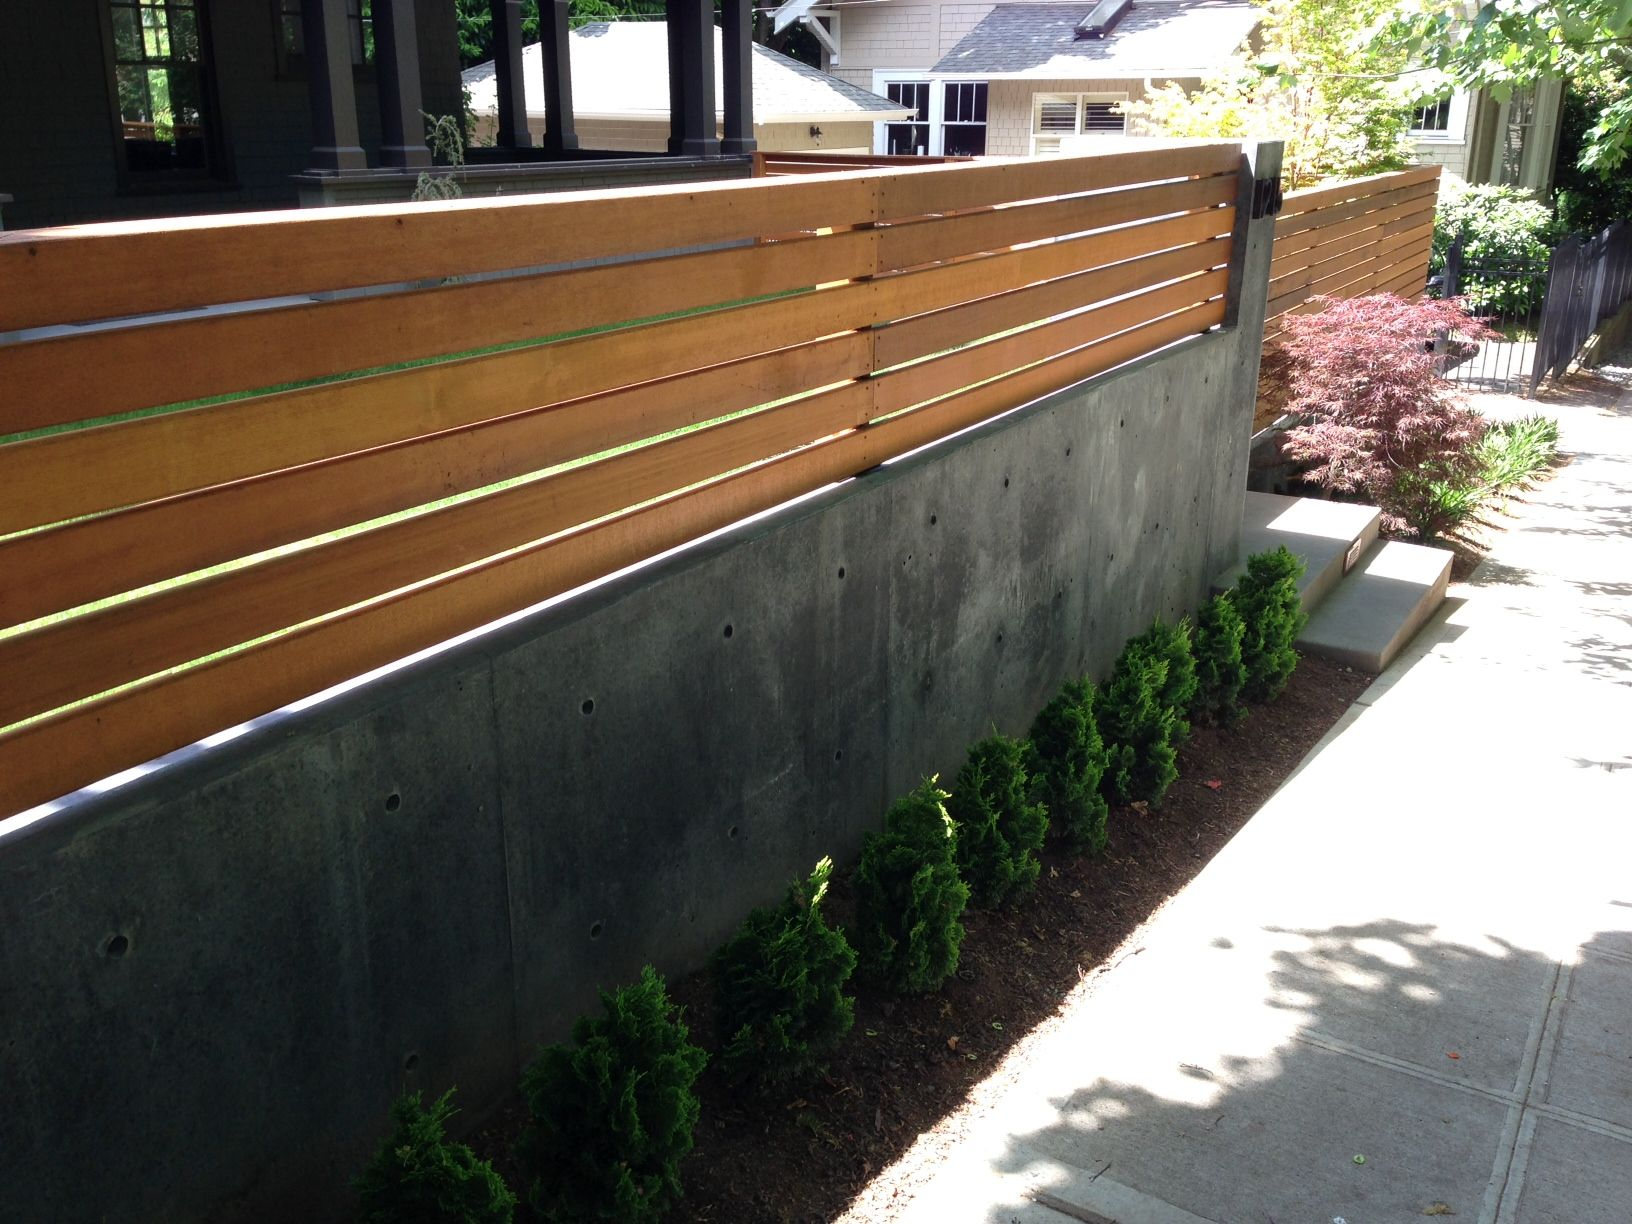 Wood Trellis On Top Of Concrete Retaining Wall Modern Fence Design Fence Design Concrete Retaining Walls